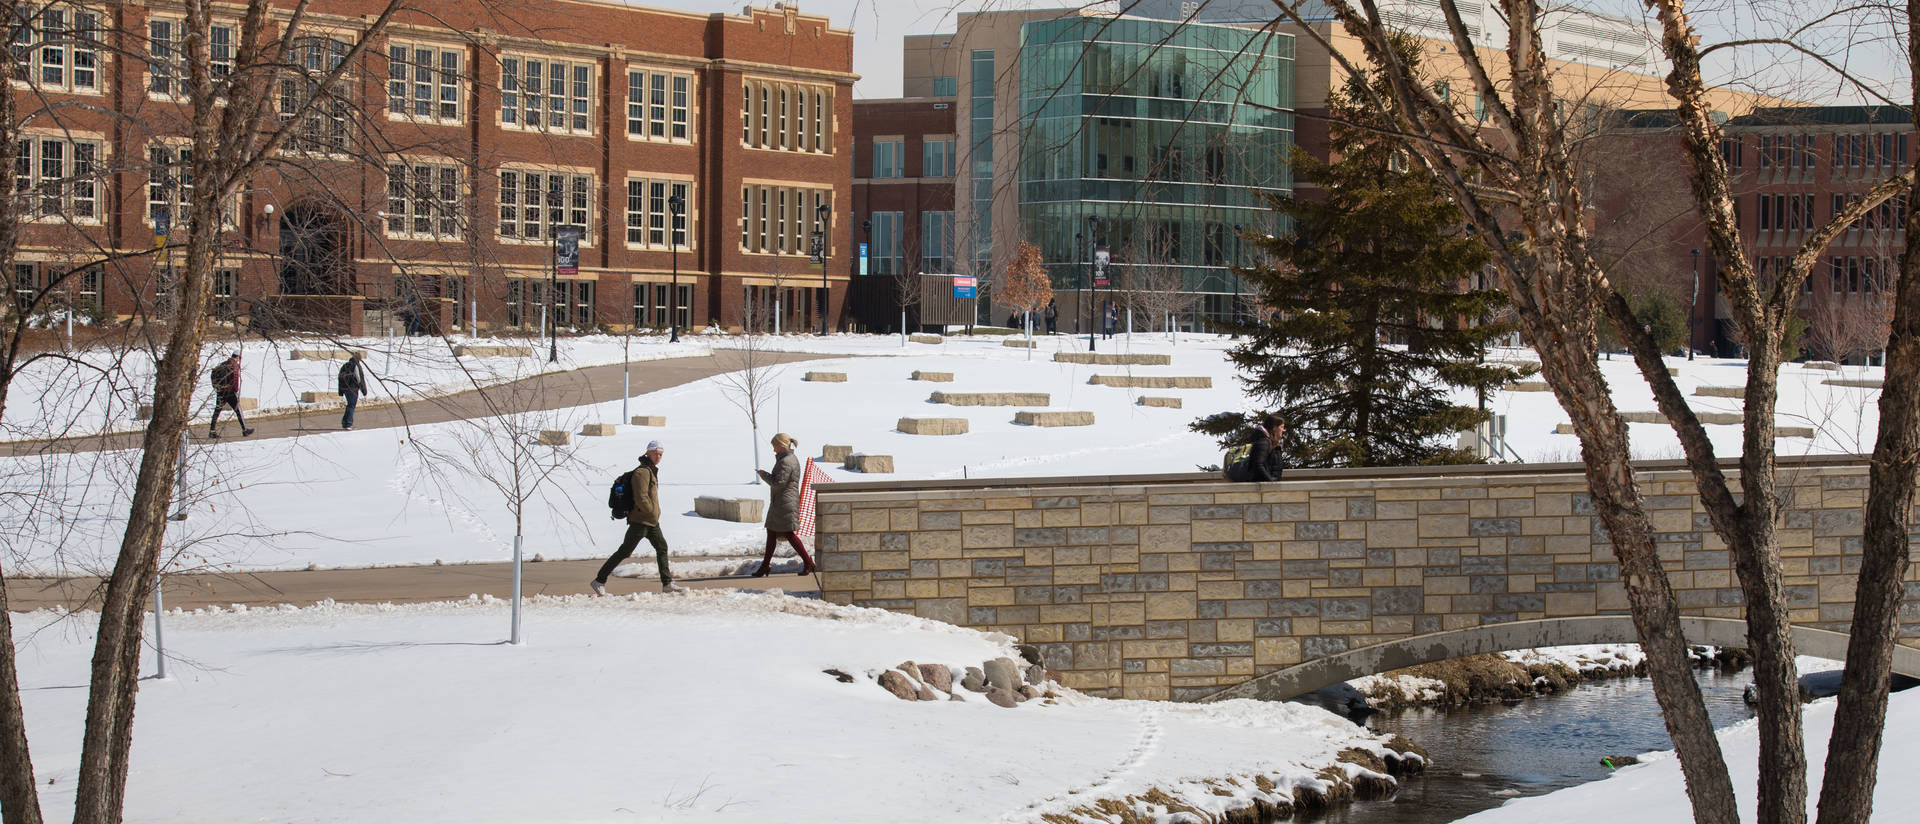 Snowy UW-Eau Claire campus mall